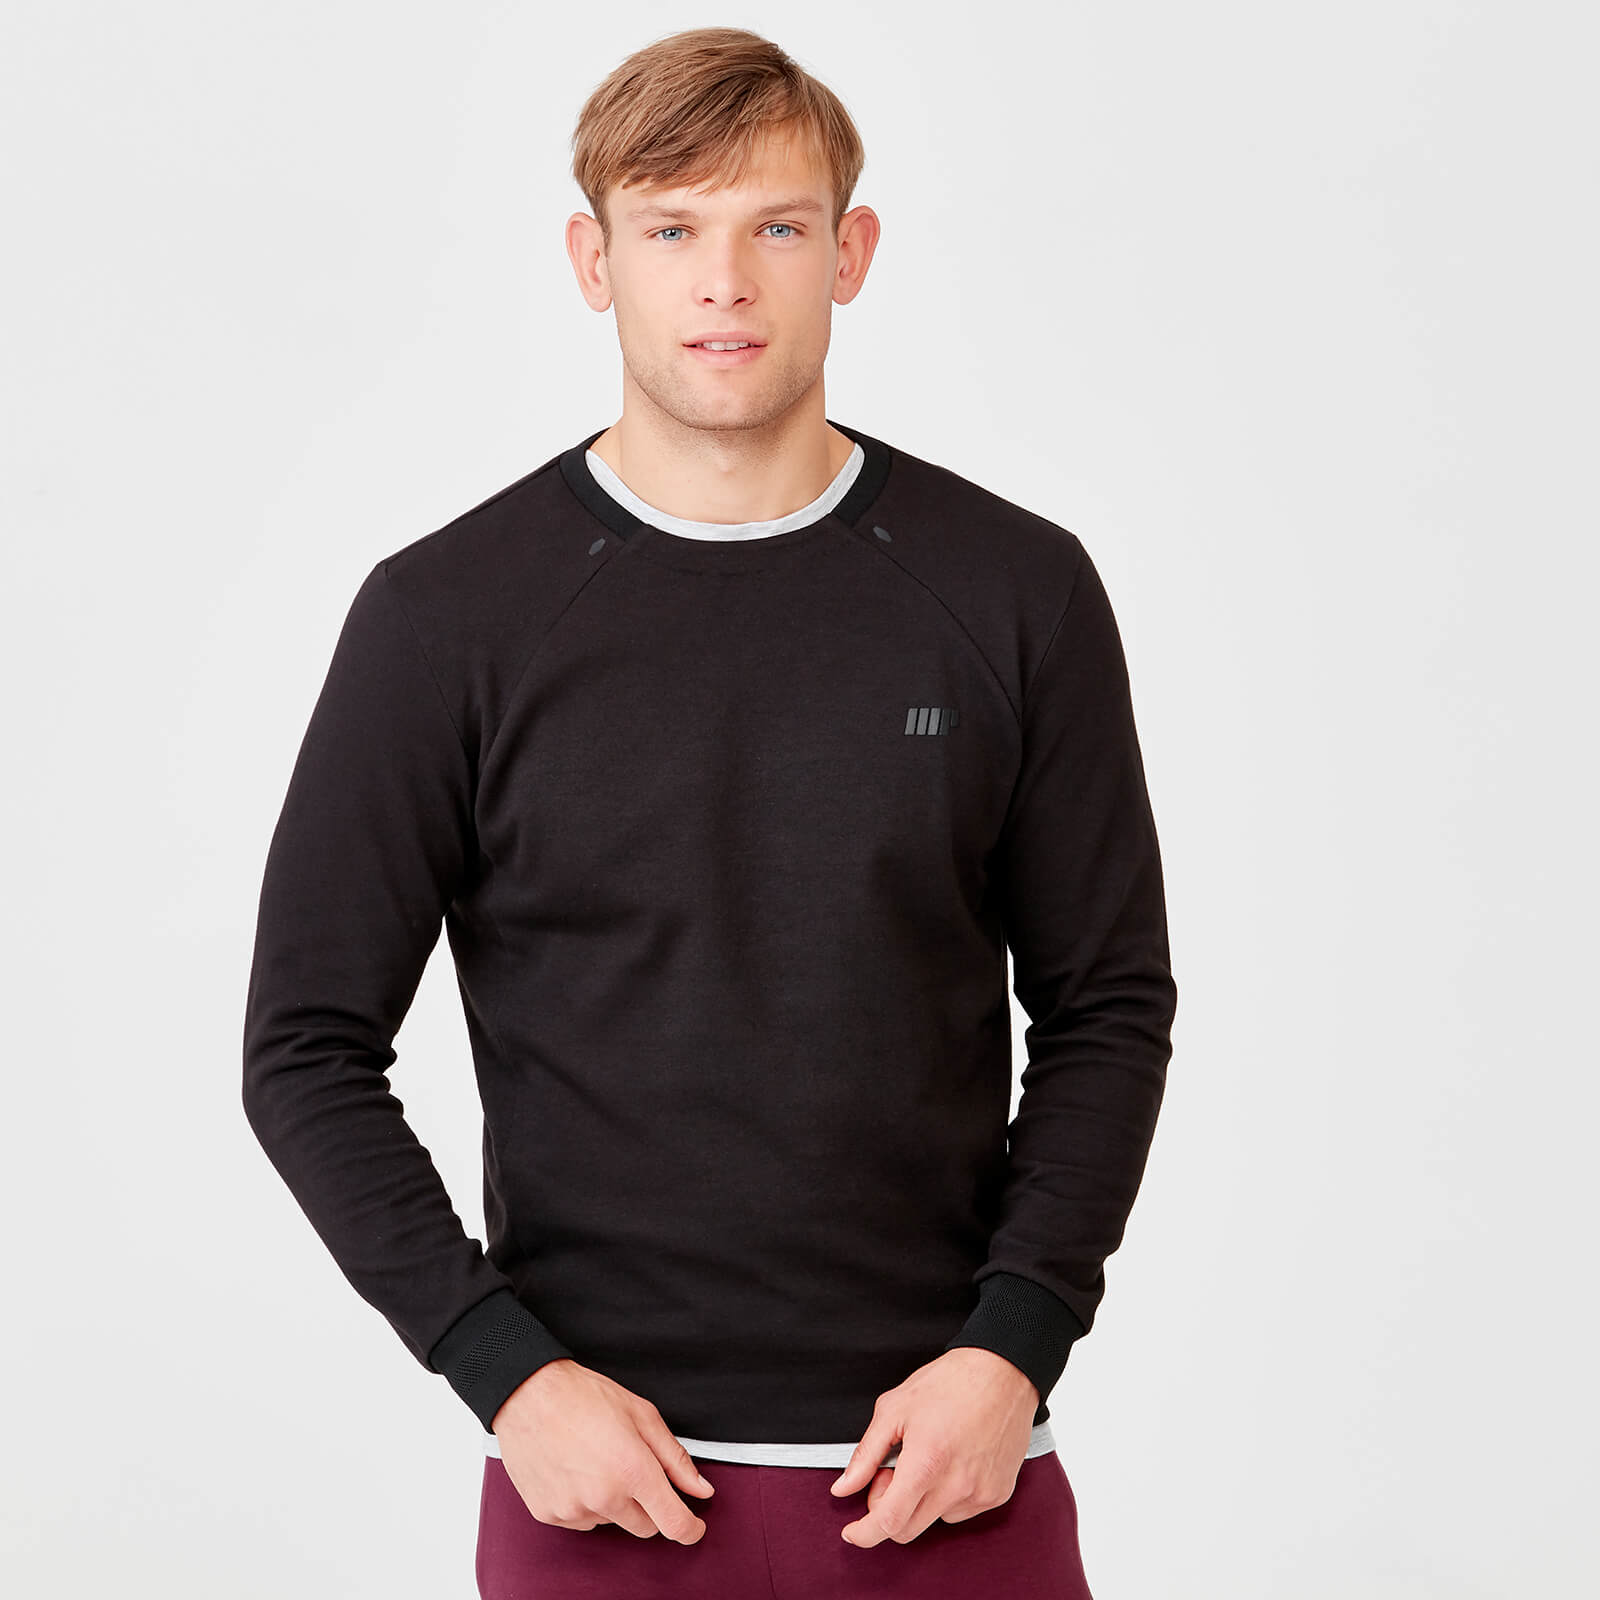 Pro Tech Crew Neck Sweatshirt 2.0 - Black - S